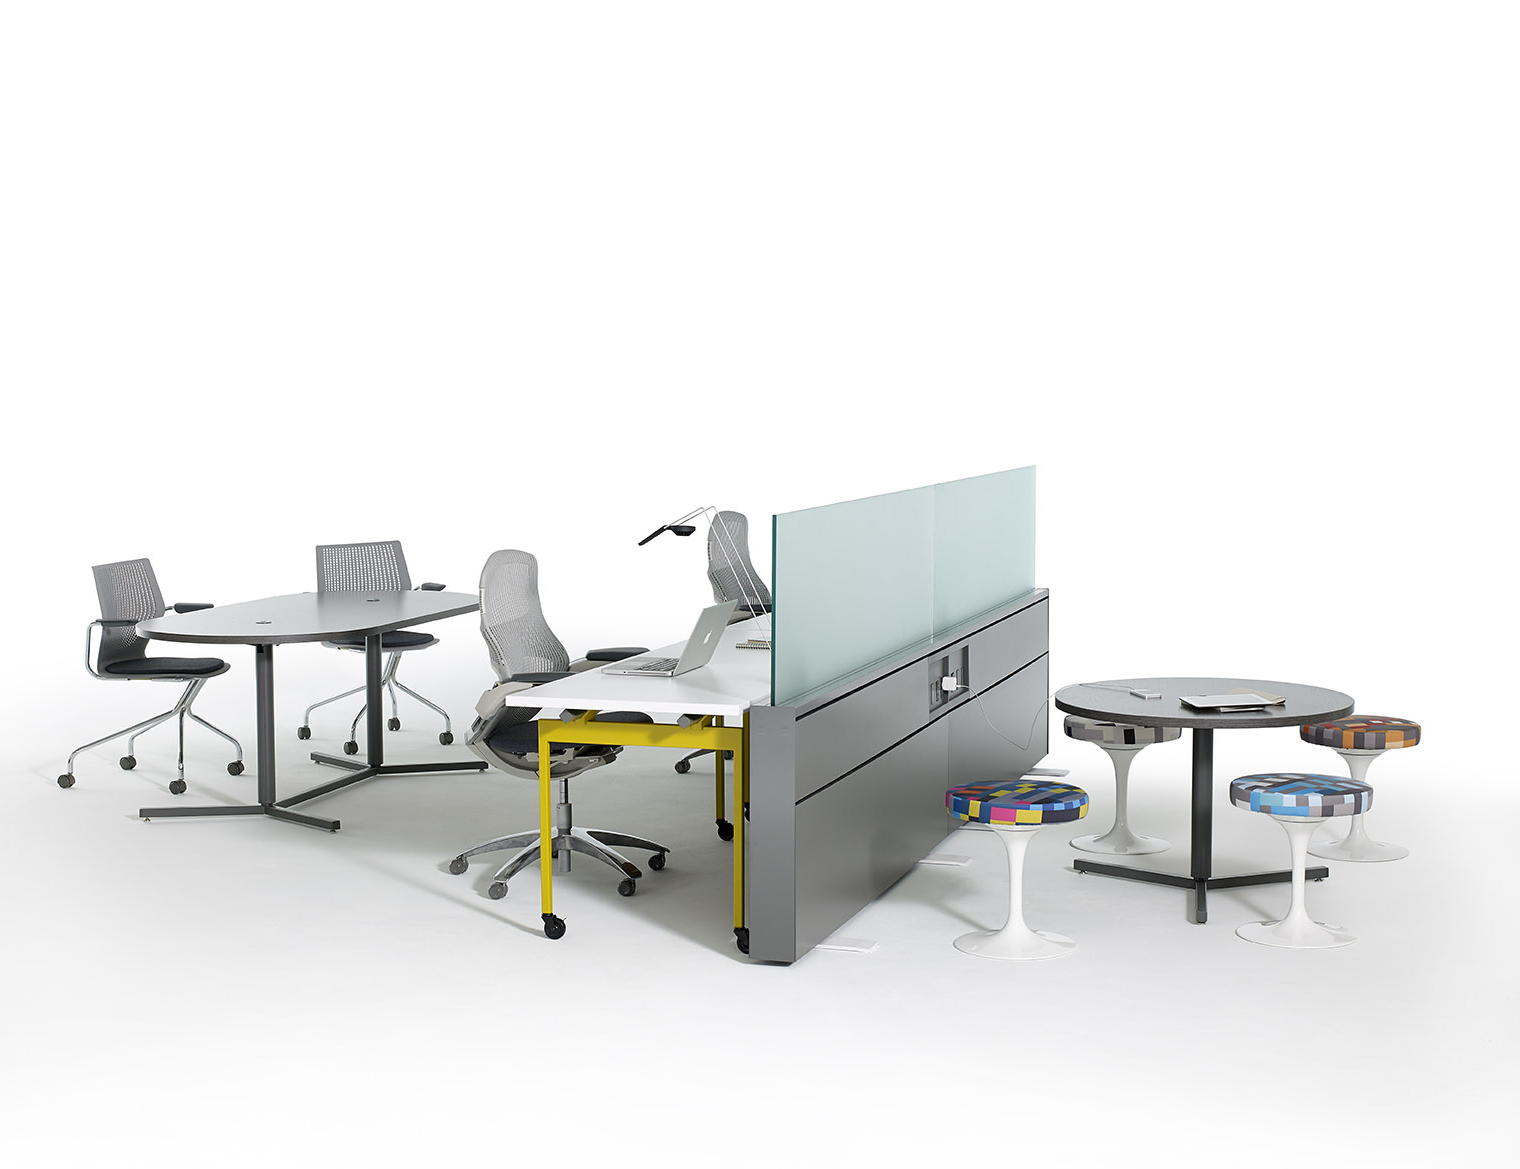 Antenna® Workspaces Activity Spaces with Fence & Antenna Y-Based Tables